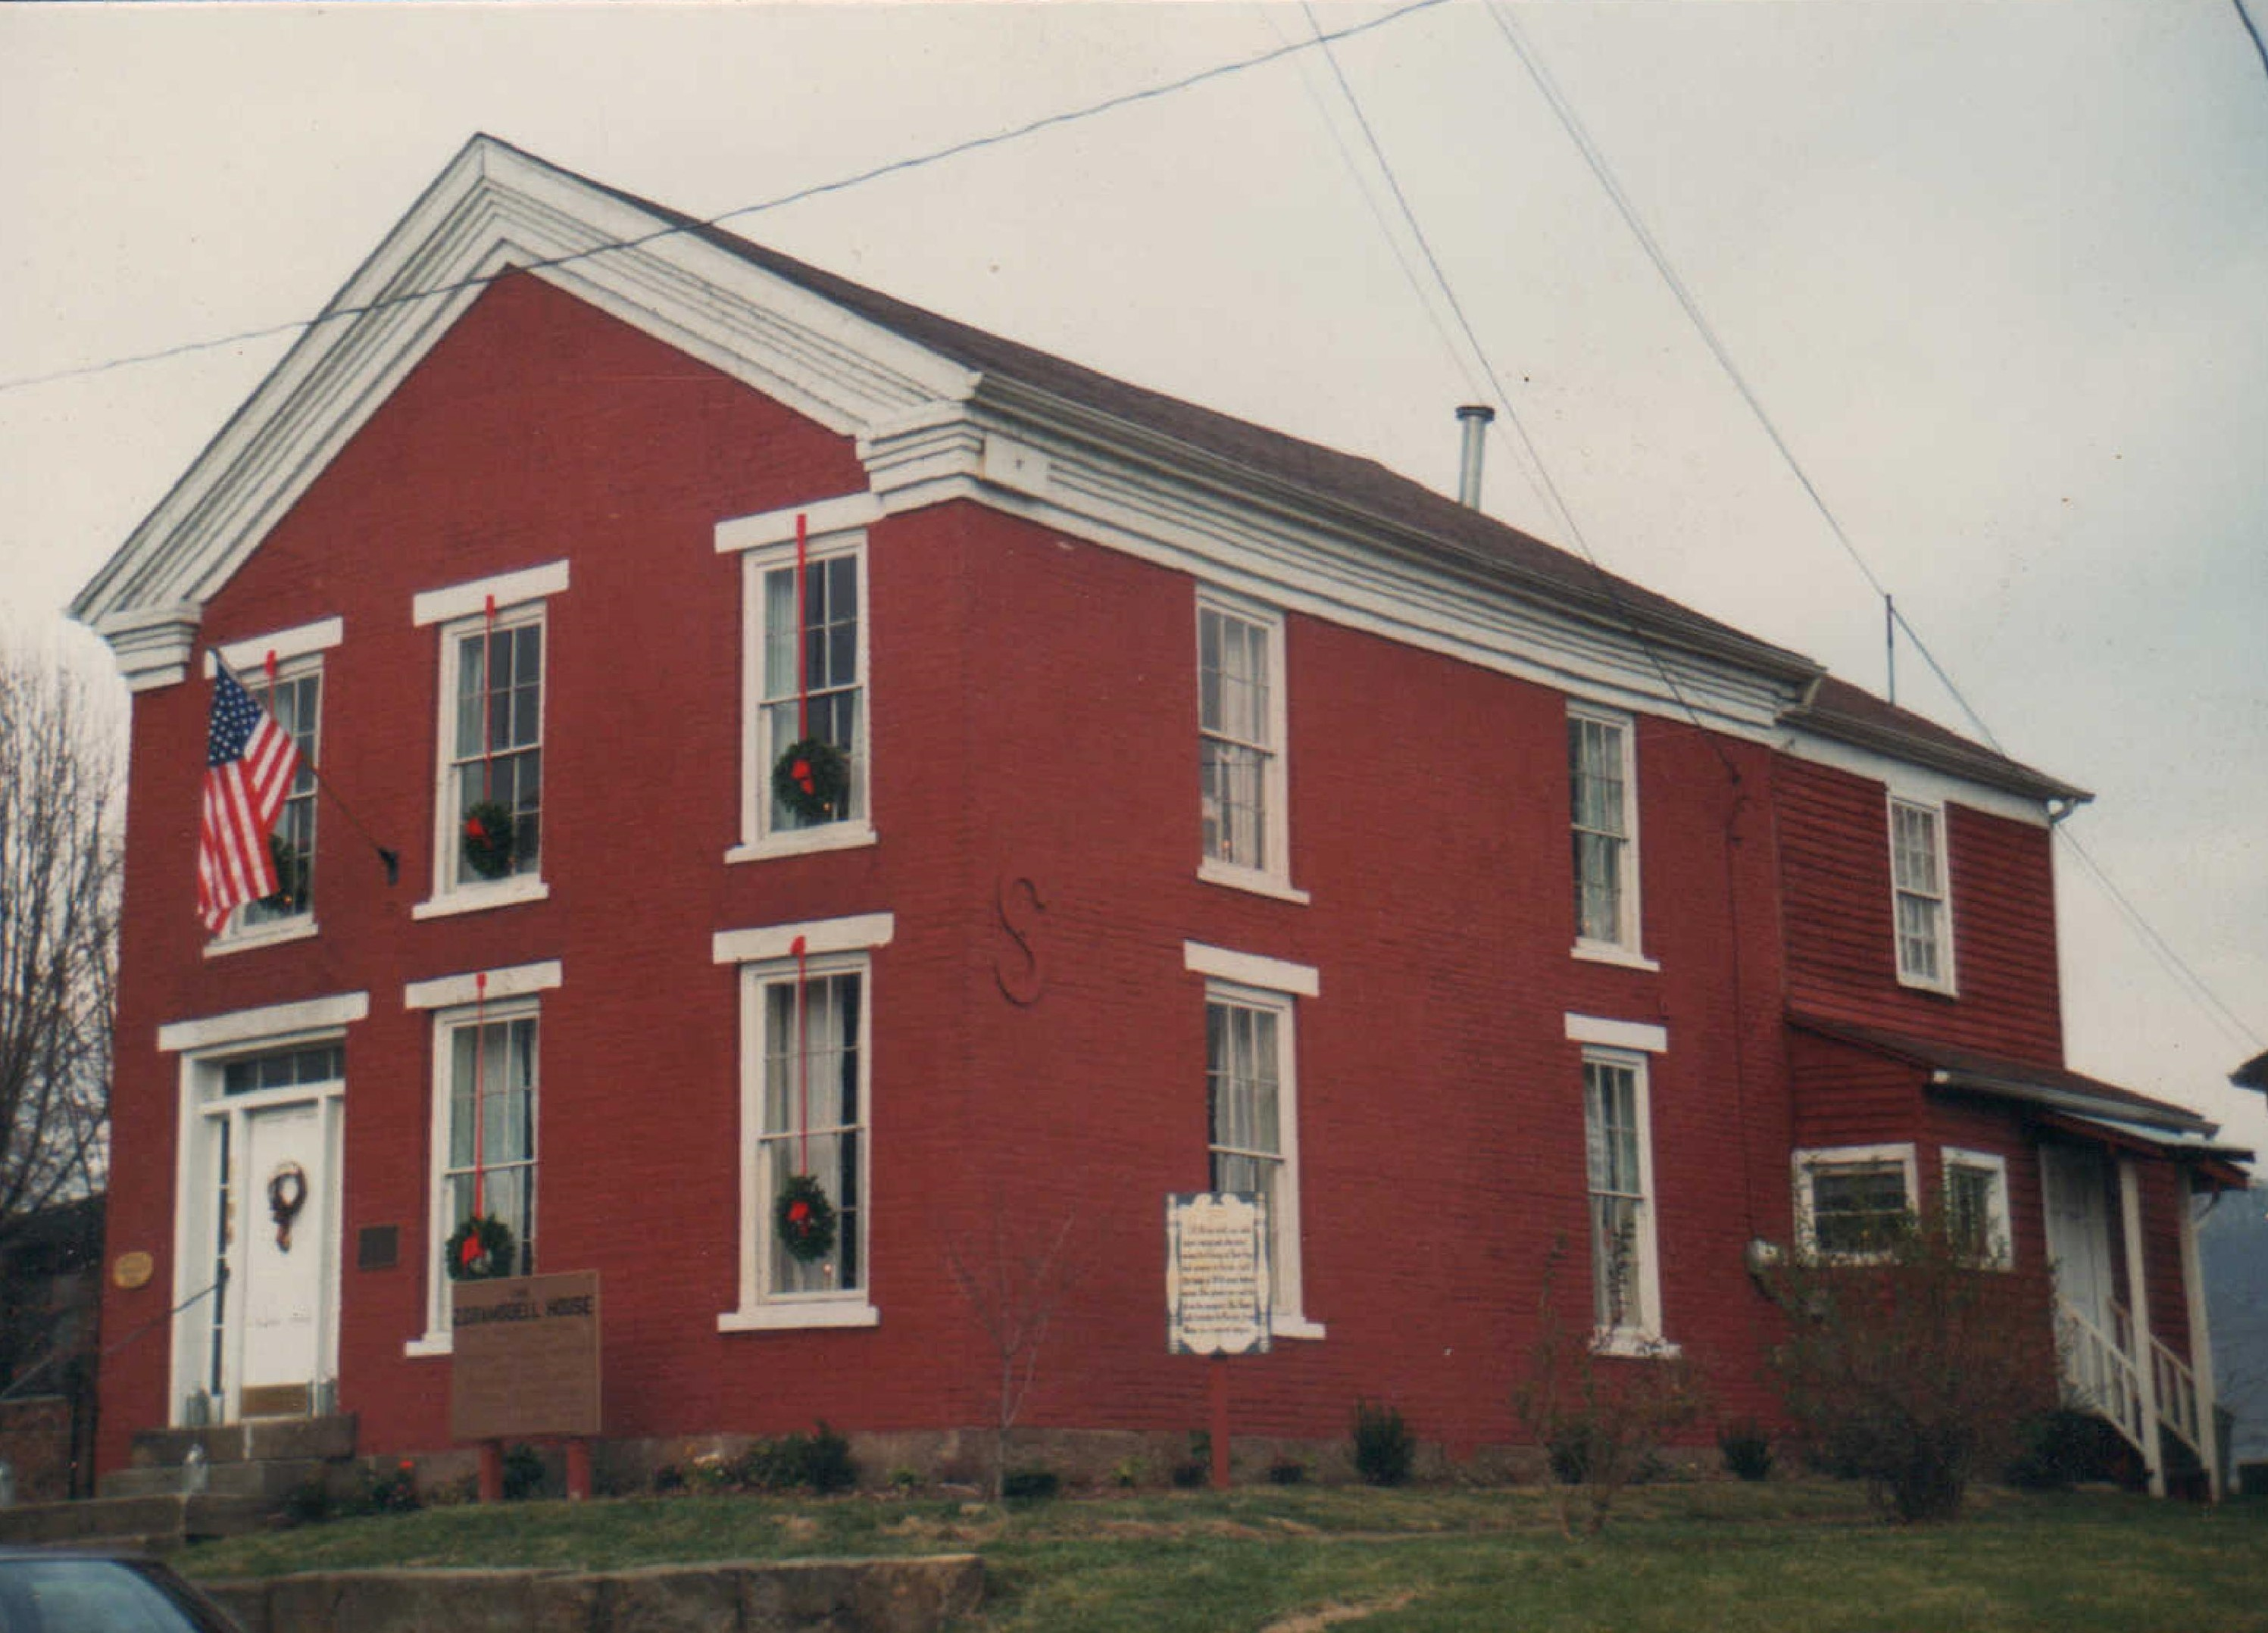 The house sometime after its initial restoration in the 1980s.